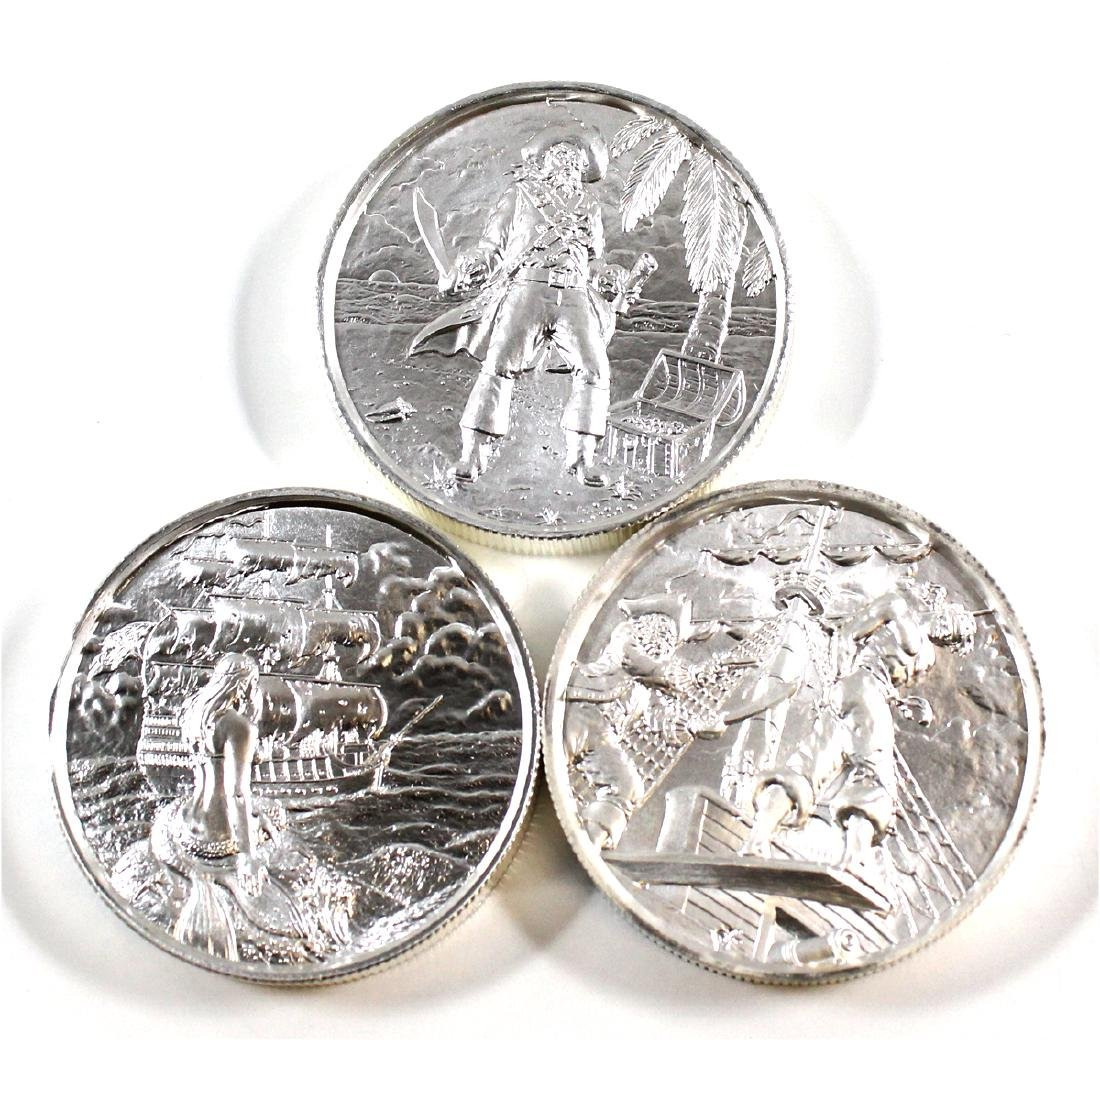 Lot of 3x Privateer Series Ultra High Relief 2oz .999